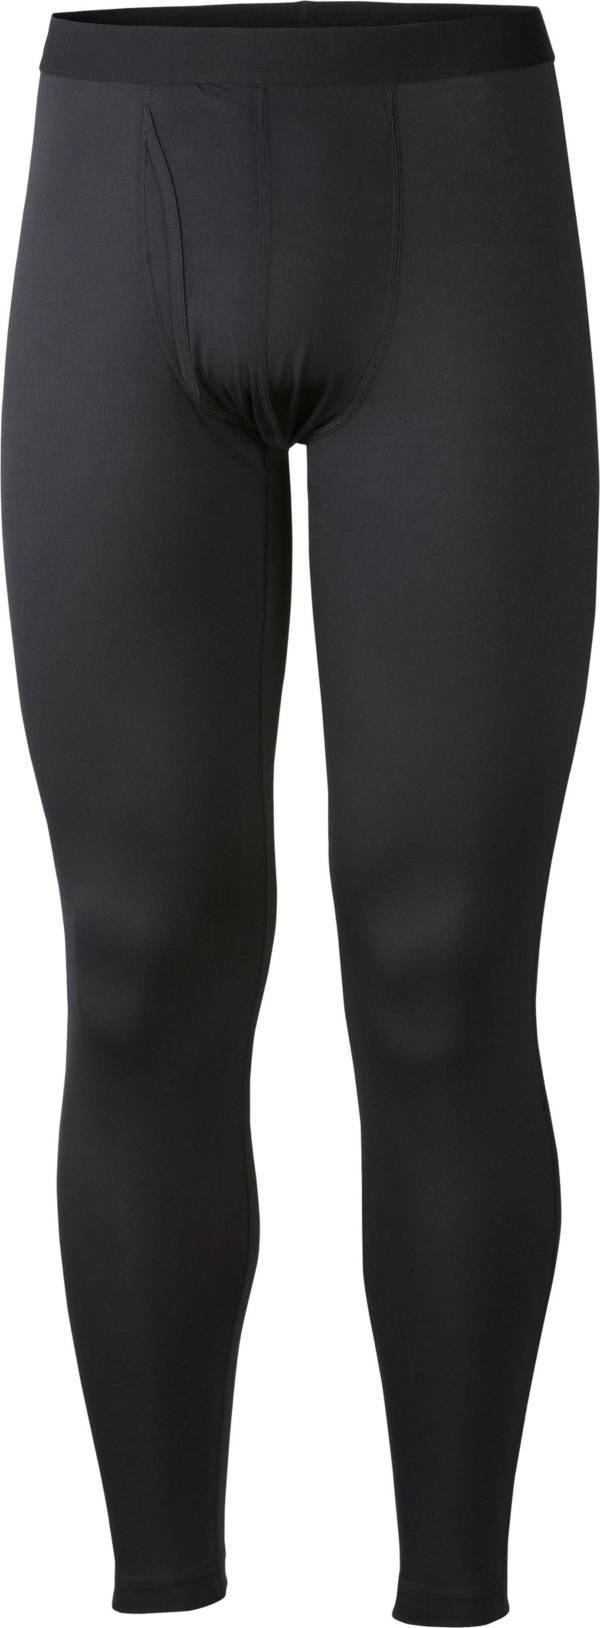 Columbia Men's Midweight II Baselayer Tights product image